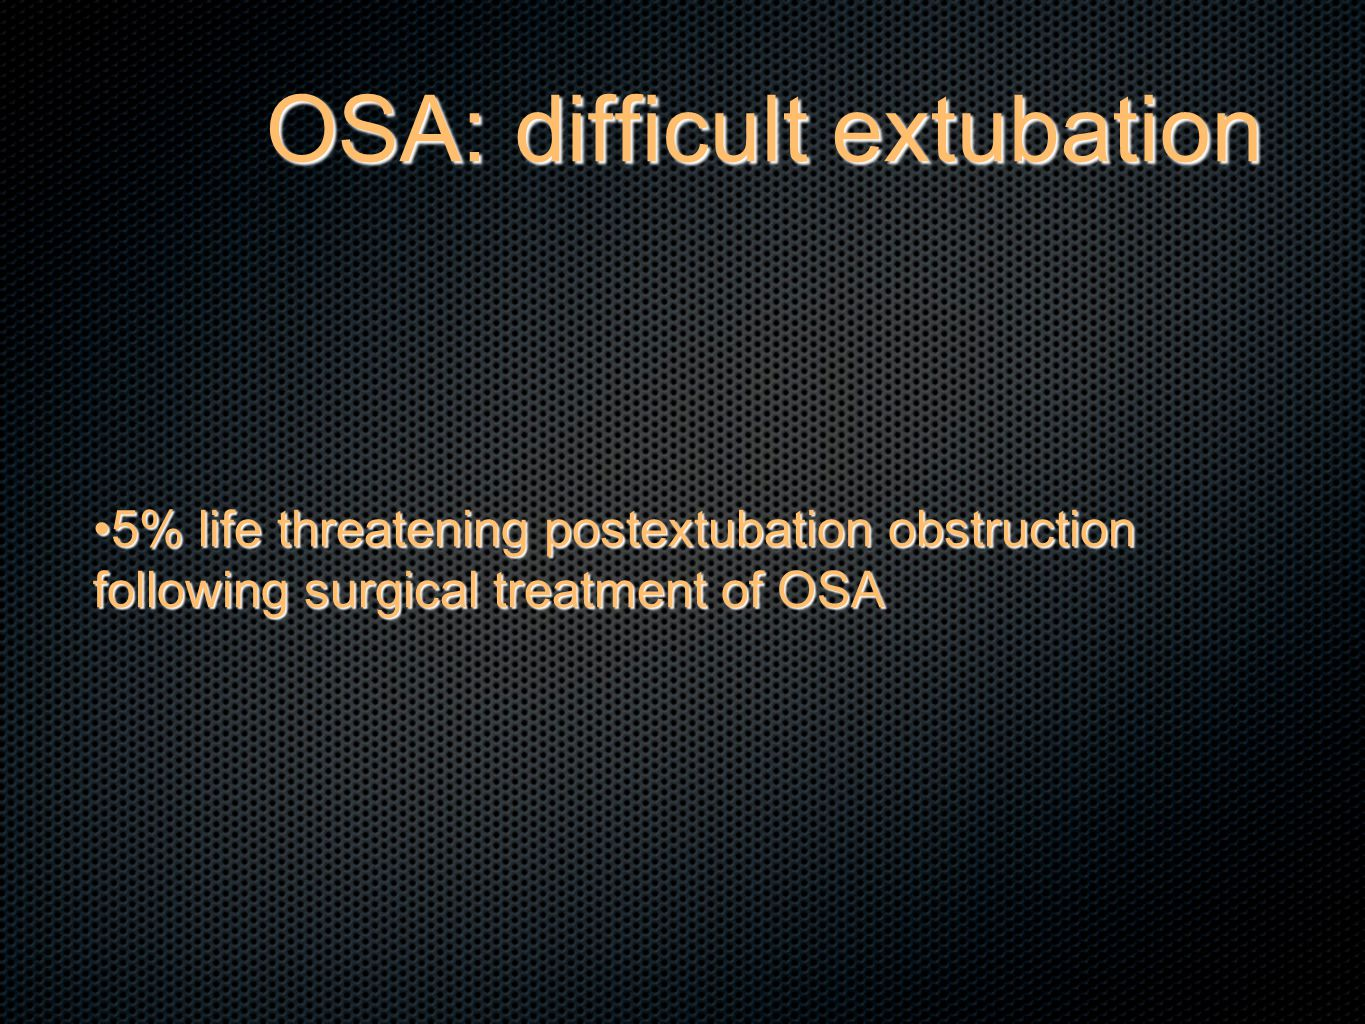 OSA: difficult extubation 5% life threatening postextubation obstruction following surgical treatment of OSA5% life threatening postextubation obstruction following surgical treatment of OSA